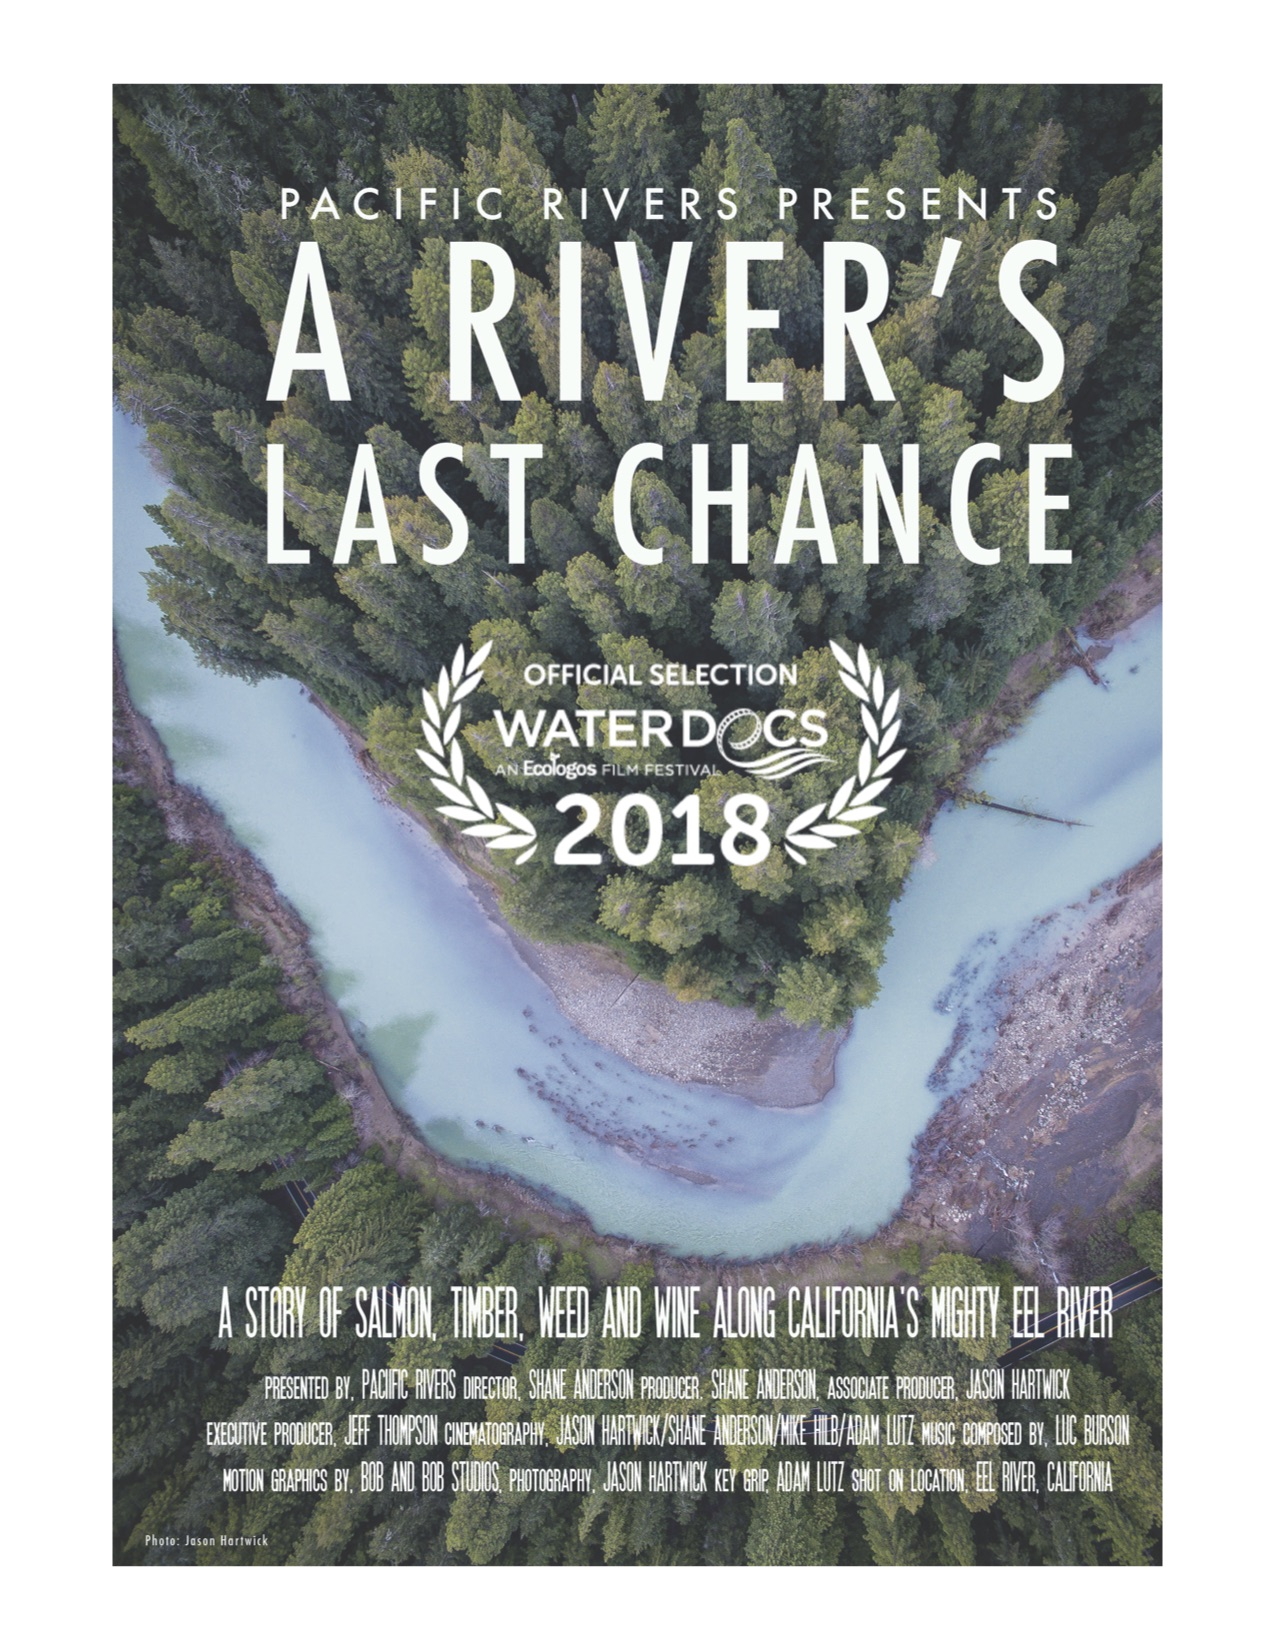 wPoster_A_River's_Last_Chance_pacificrivers_4_8_2017.jpg